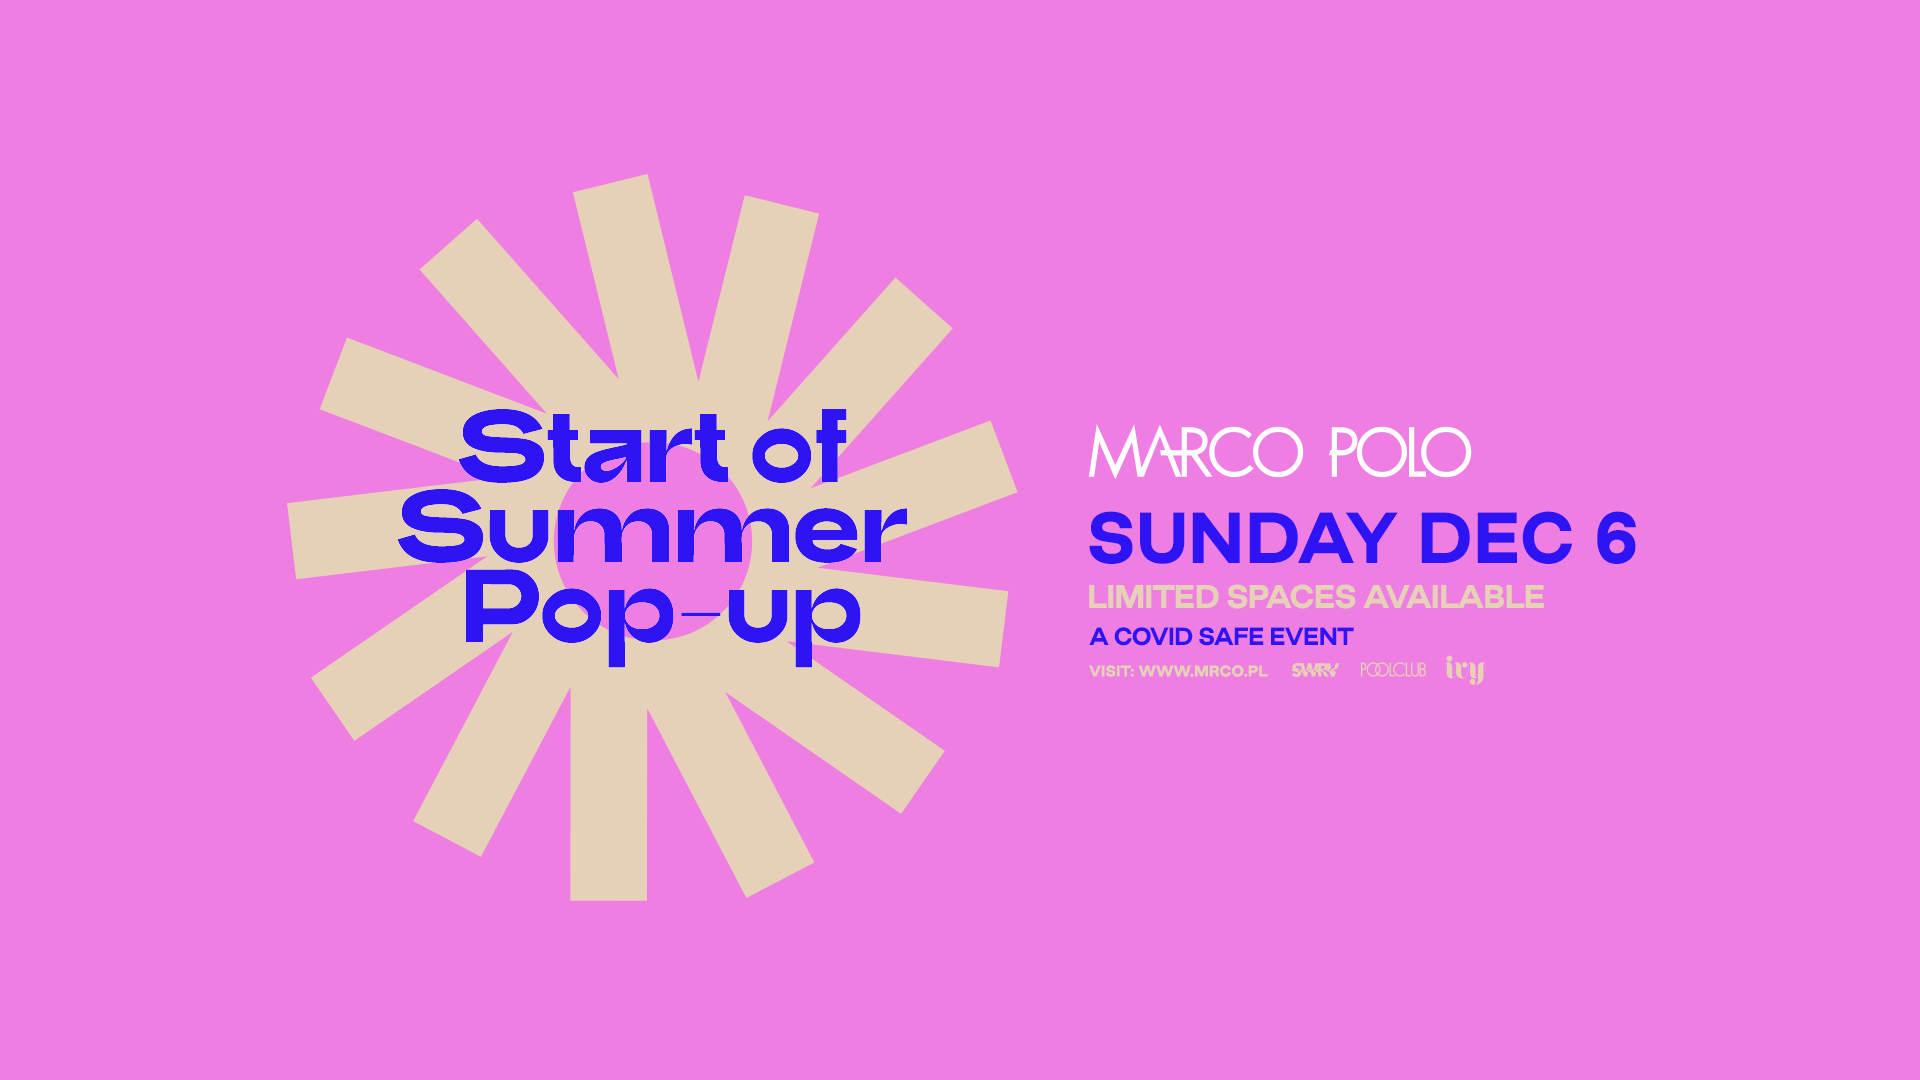 Tickets for Marco Polo | February 23 in Sydney from Merivale